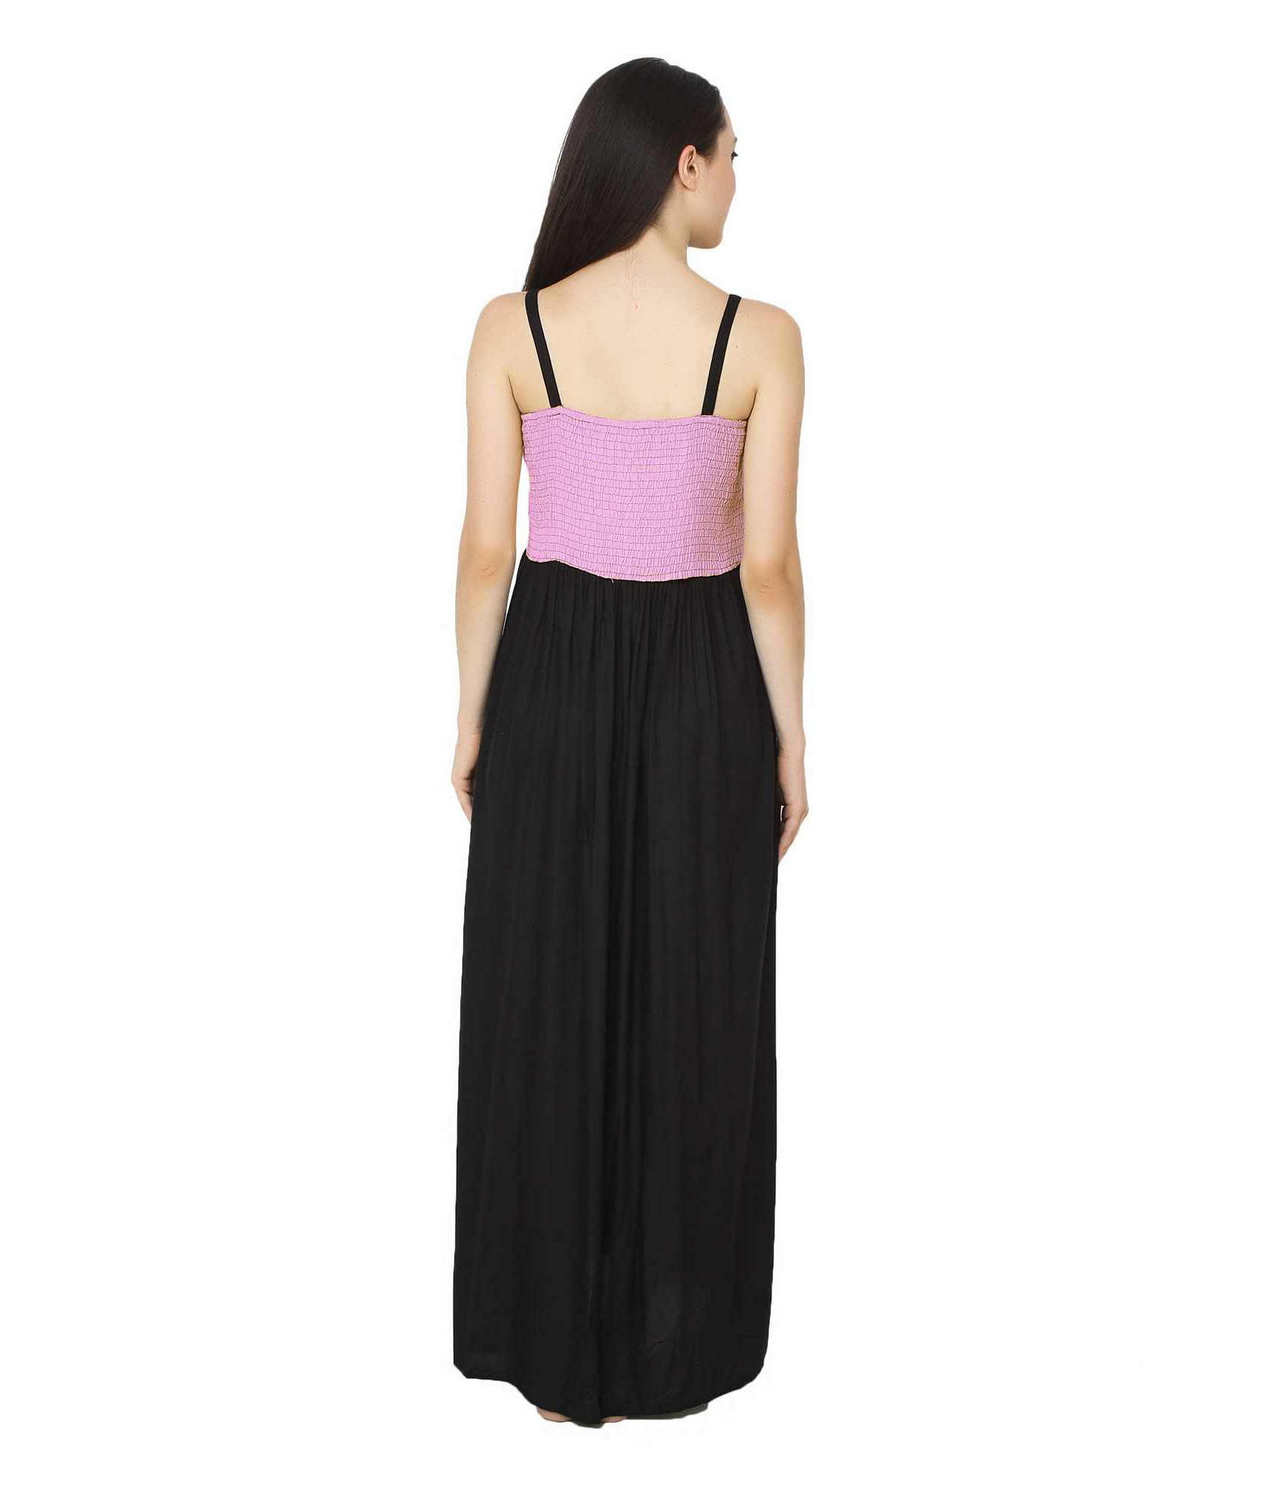 Embroidered Blouson Maxi Dress in Baby Pink:Black